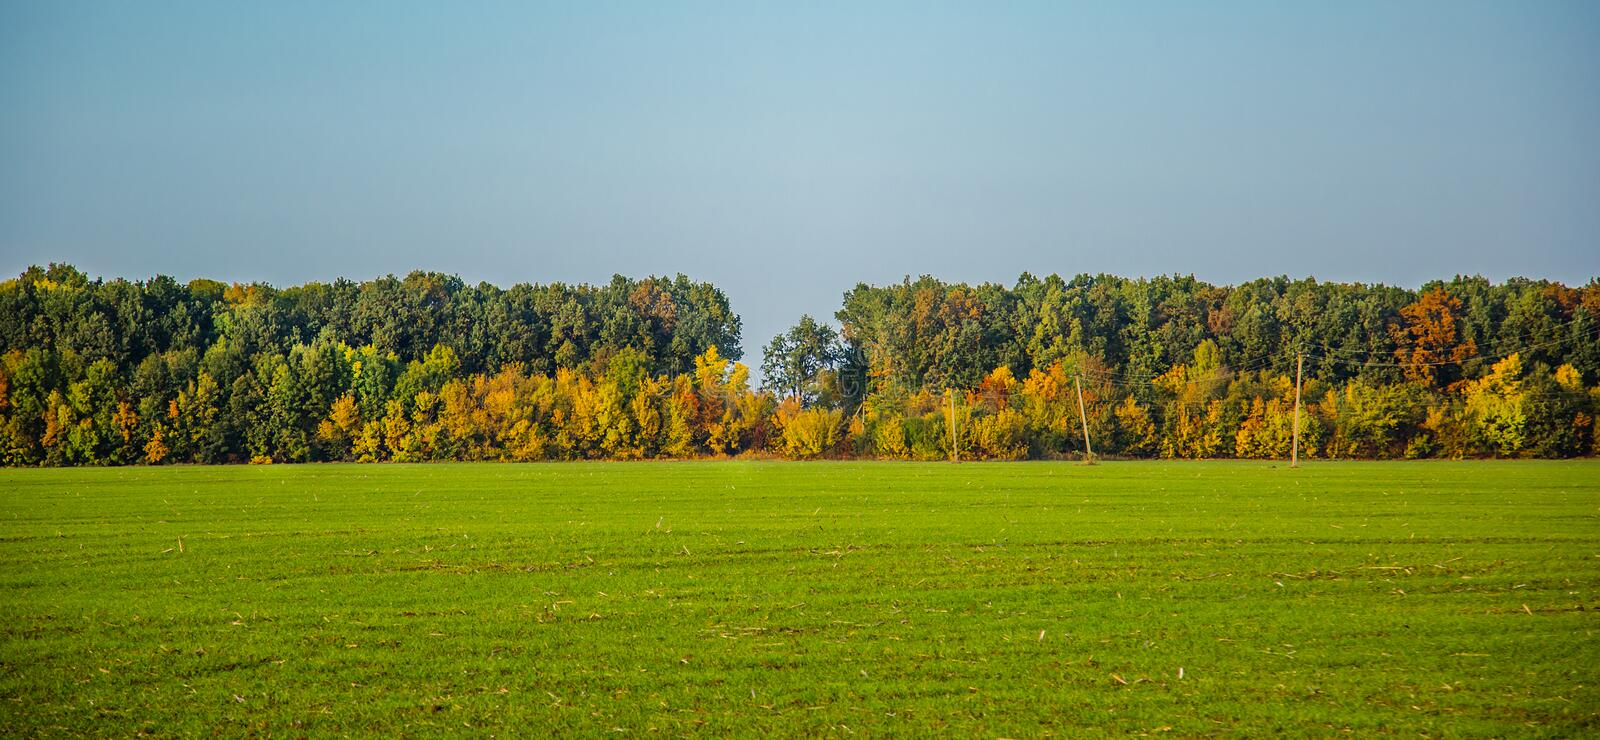 October, autumn in the forest a beautiful view from the field of golden, yellow, orange and green trees. Background stock image